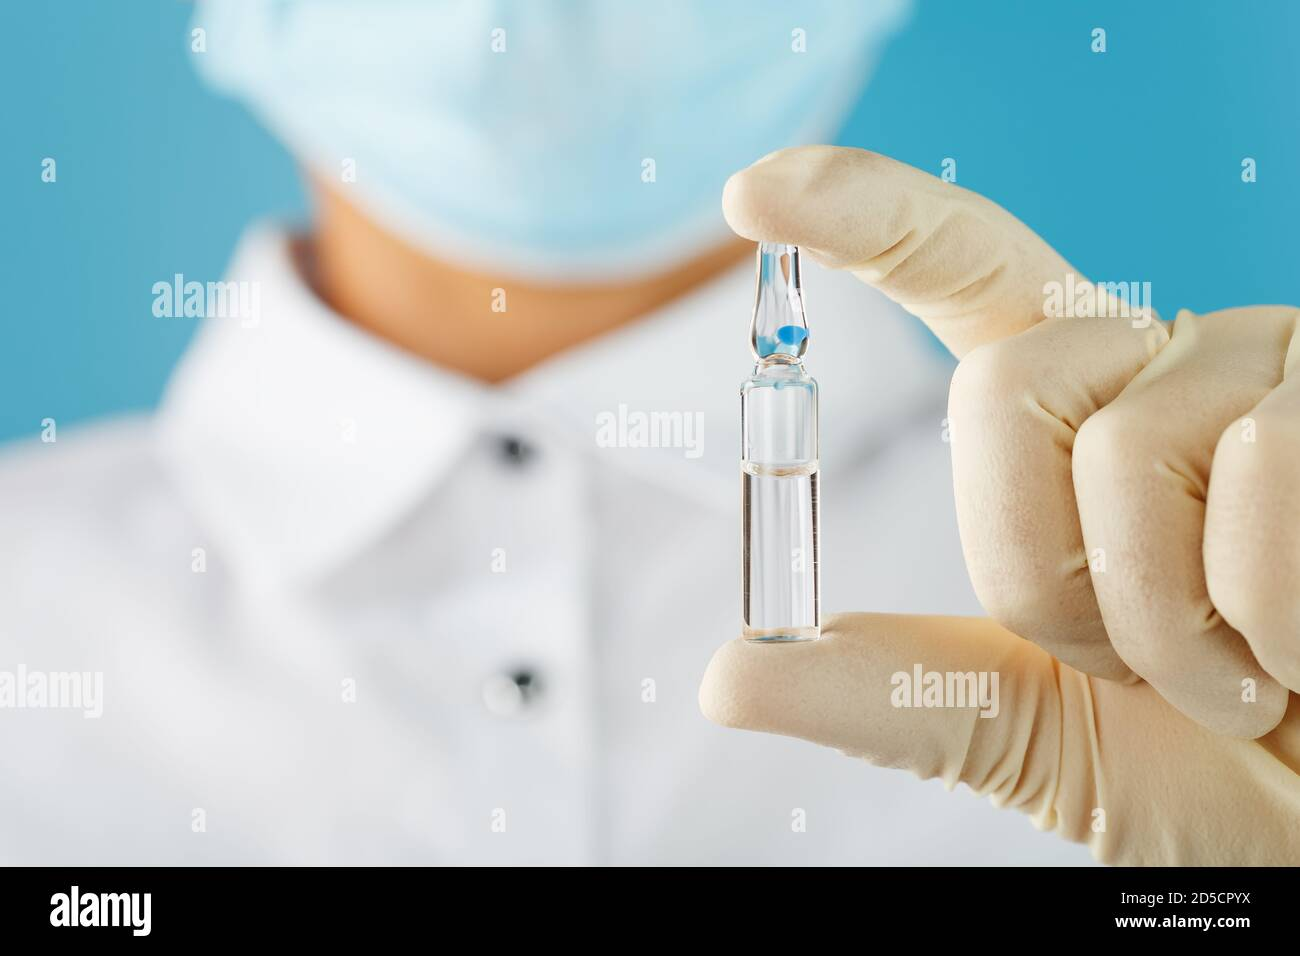 In the hands of a research scientist, a doctor in rubber gloves, an ampoule with a vaccine close-up. Stock Photo